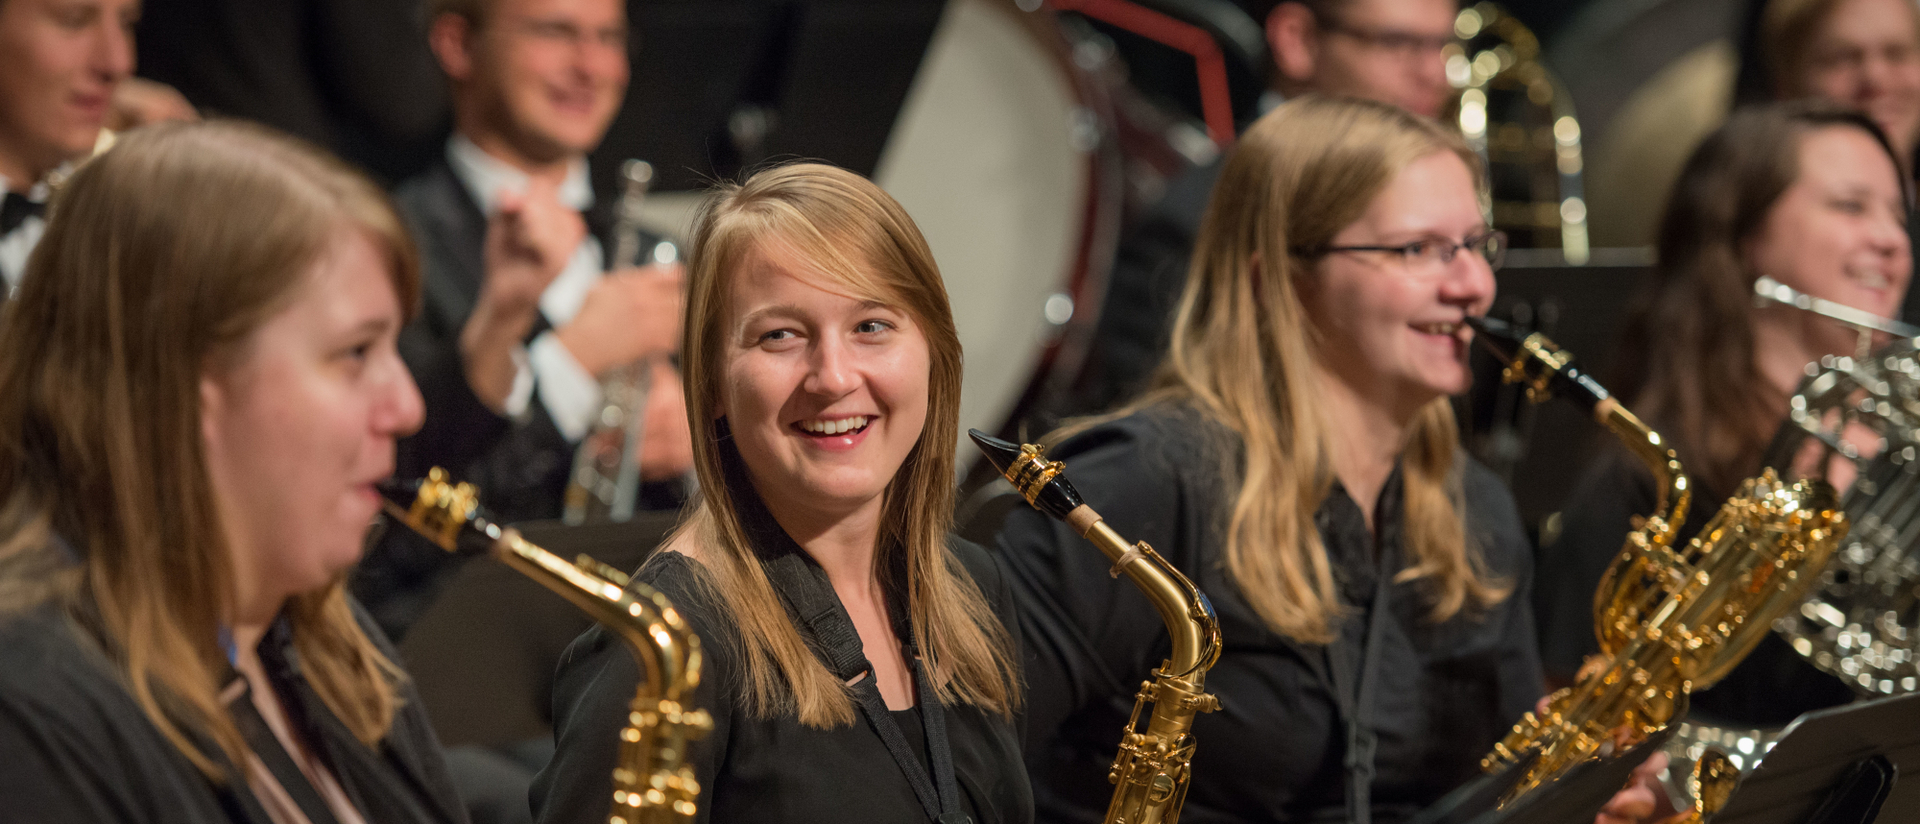 Saxophone players smiling during song break